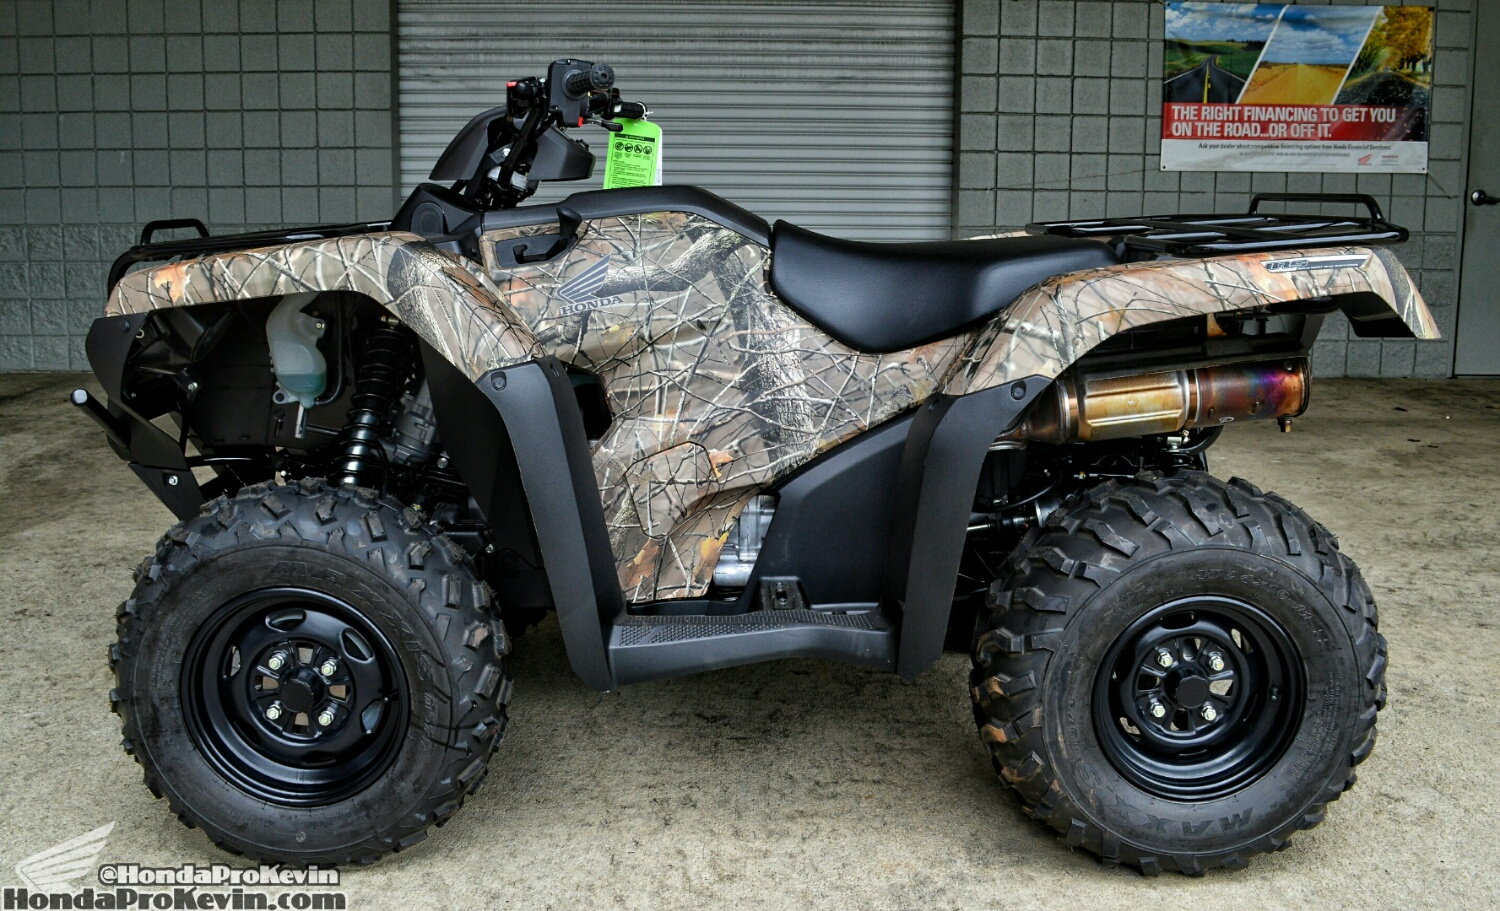 2017 honda rancher 420 dct irs eps atv review specs trx420fa6